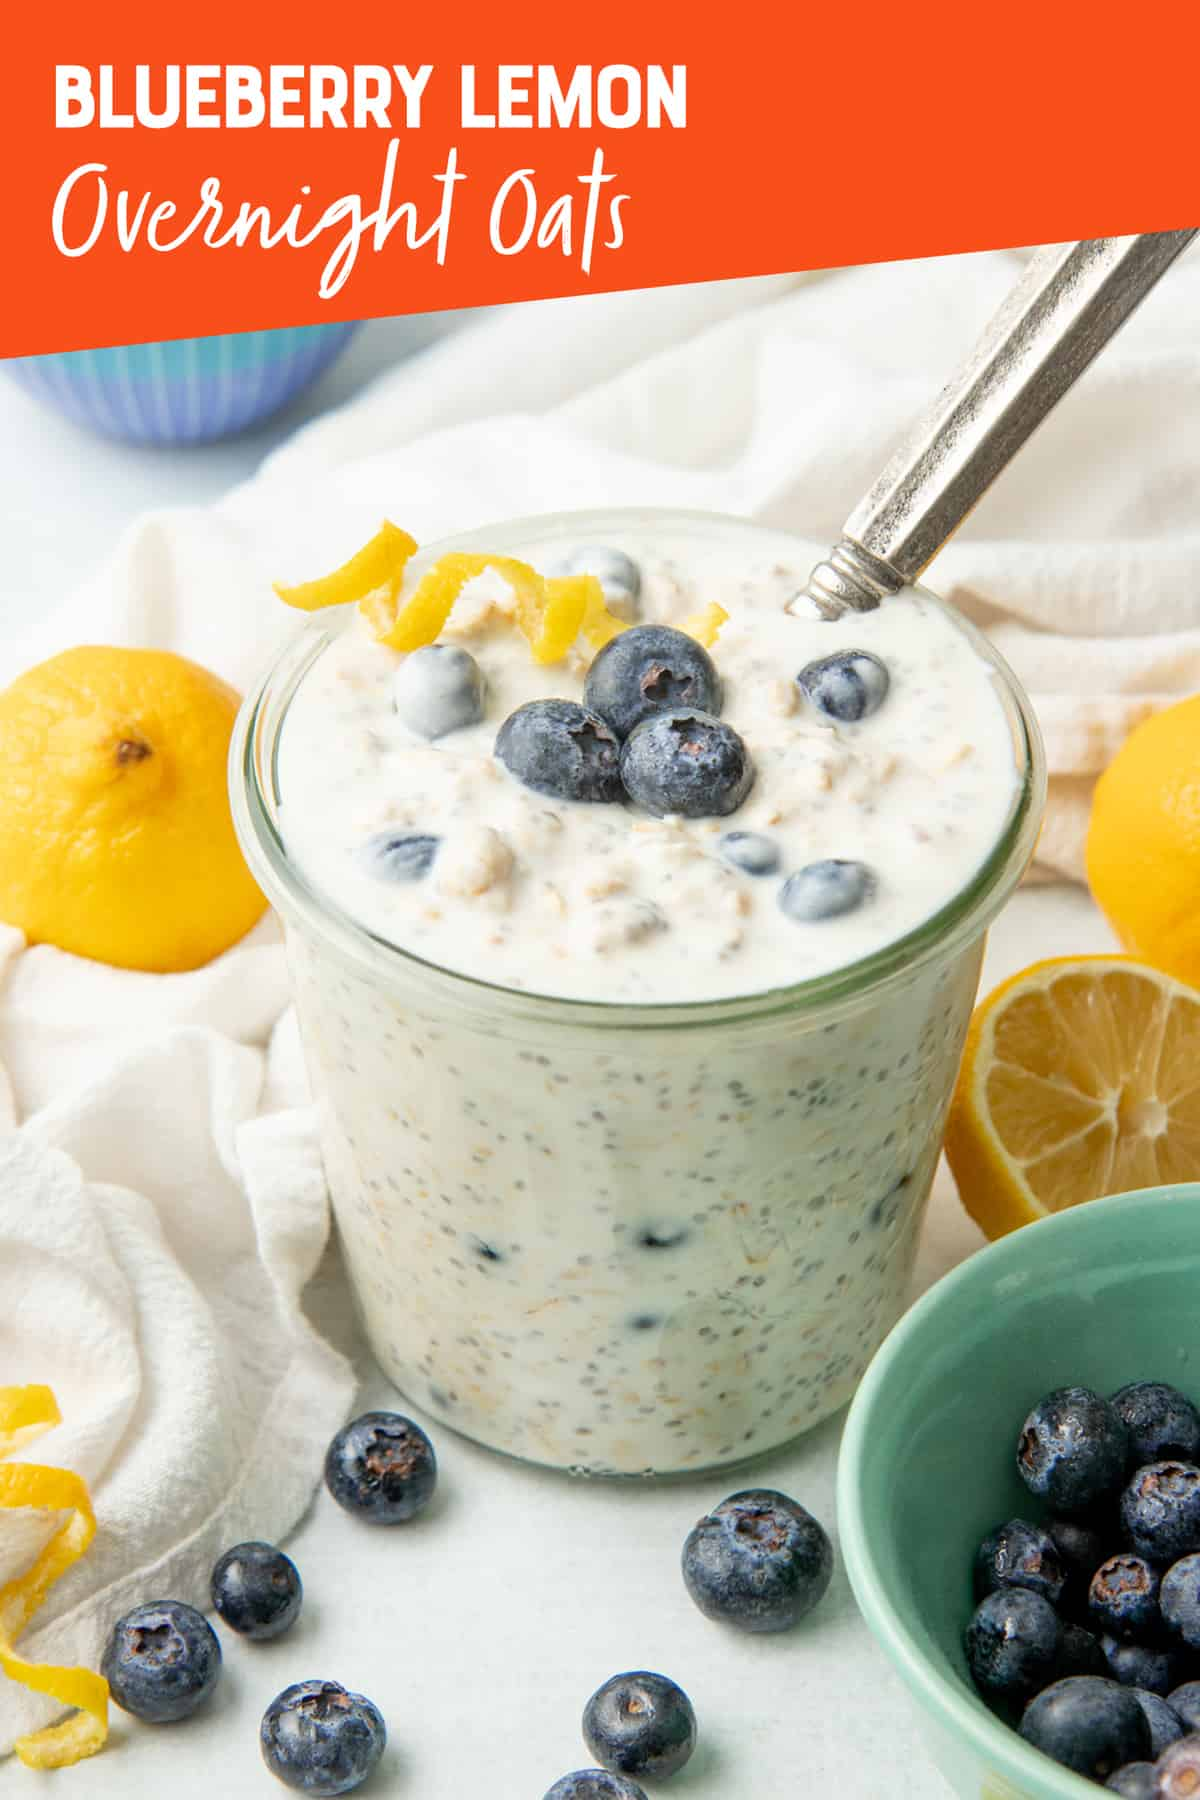 A spoon sits in a jar of blueberry overnight oats. Lemons surround the jar.